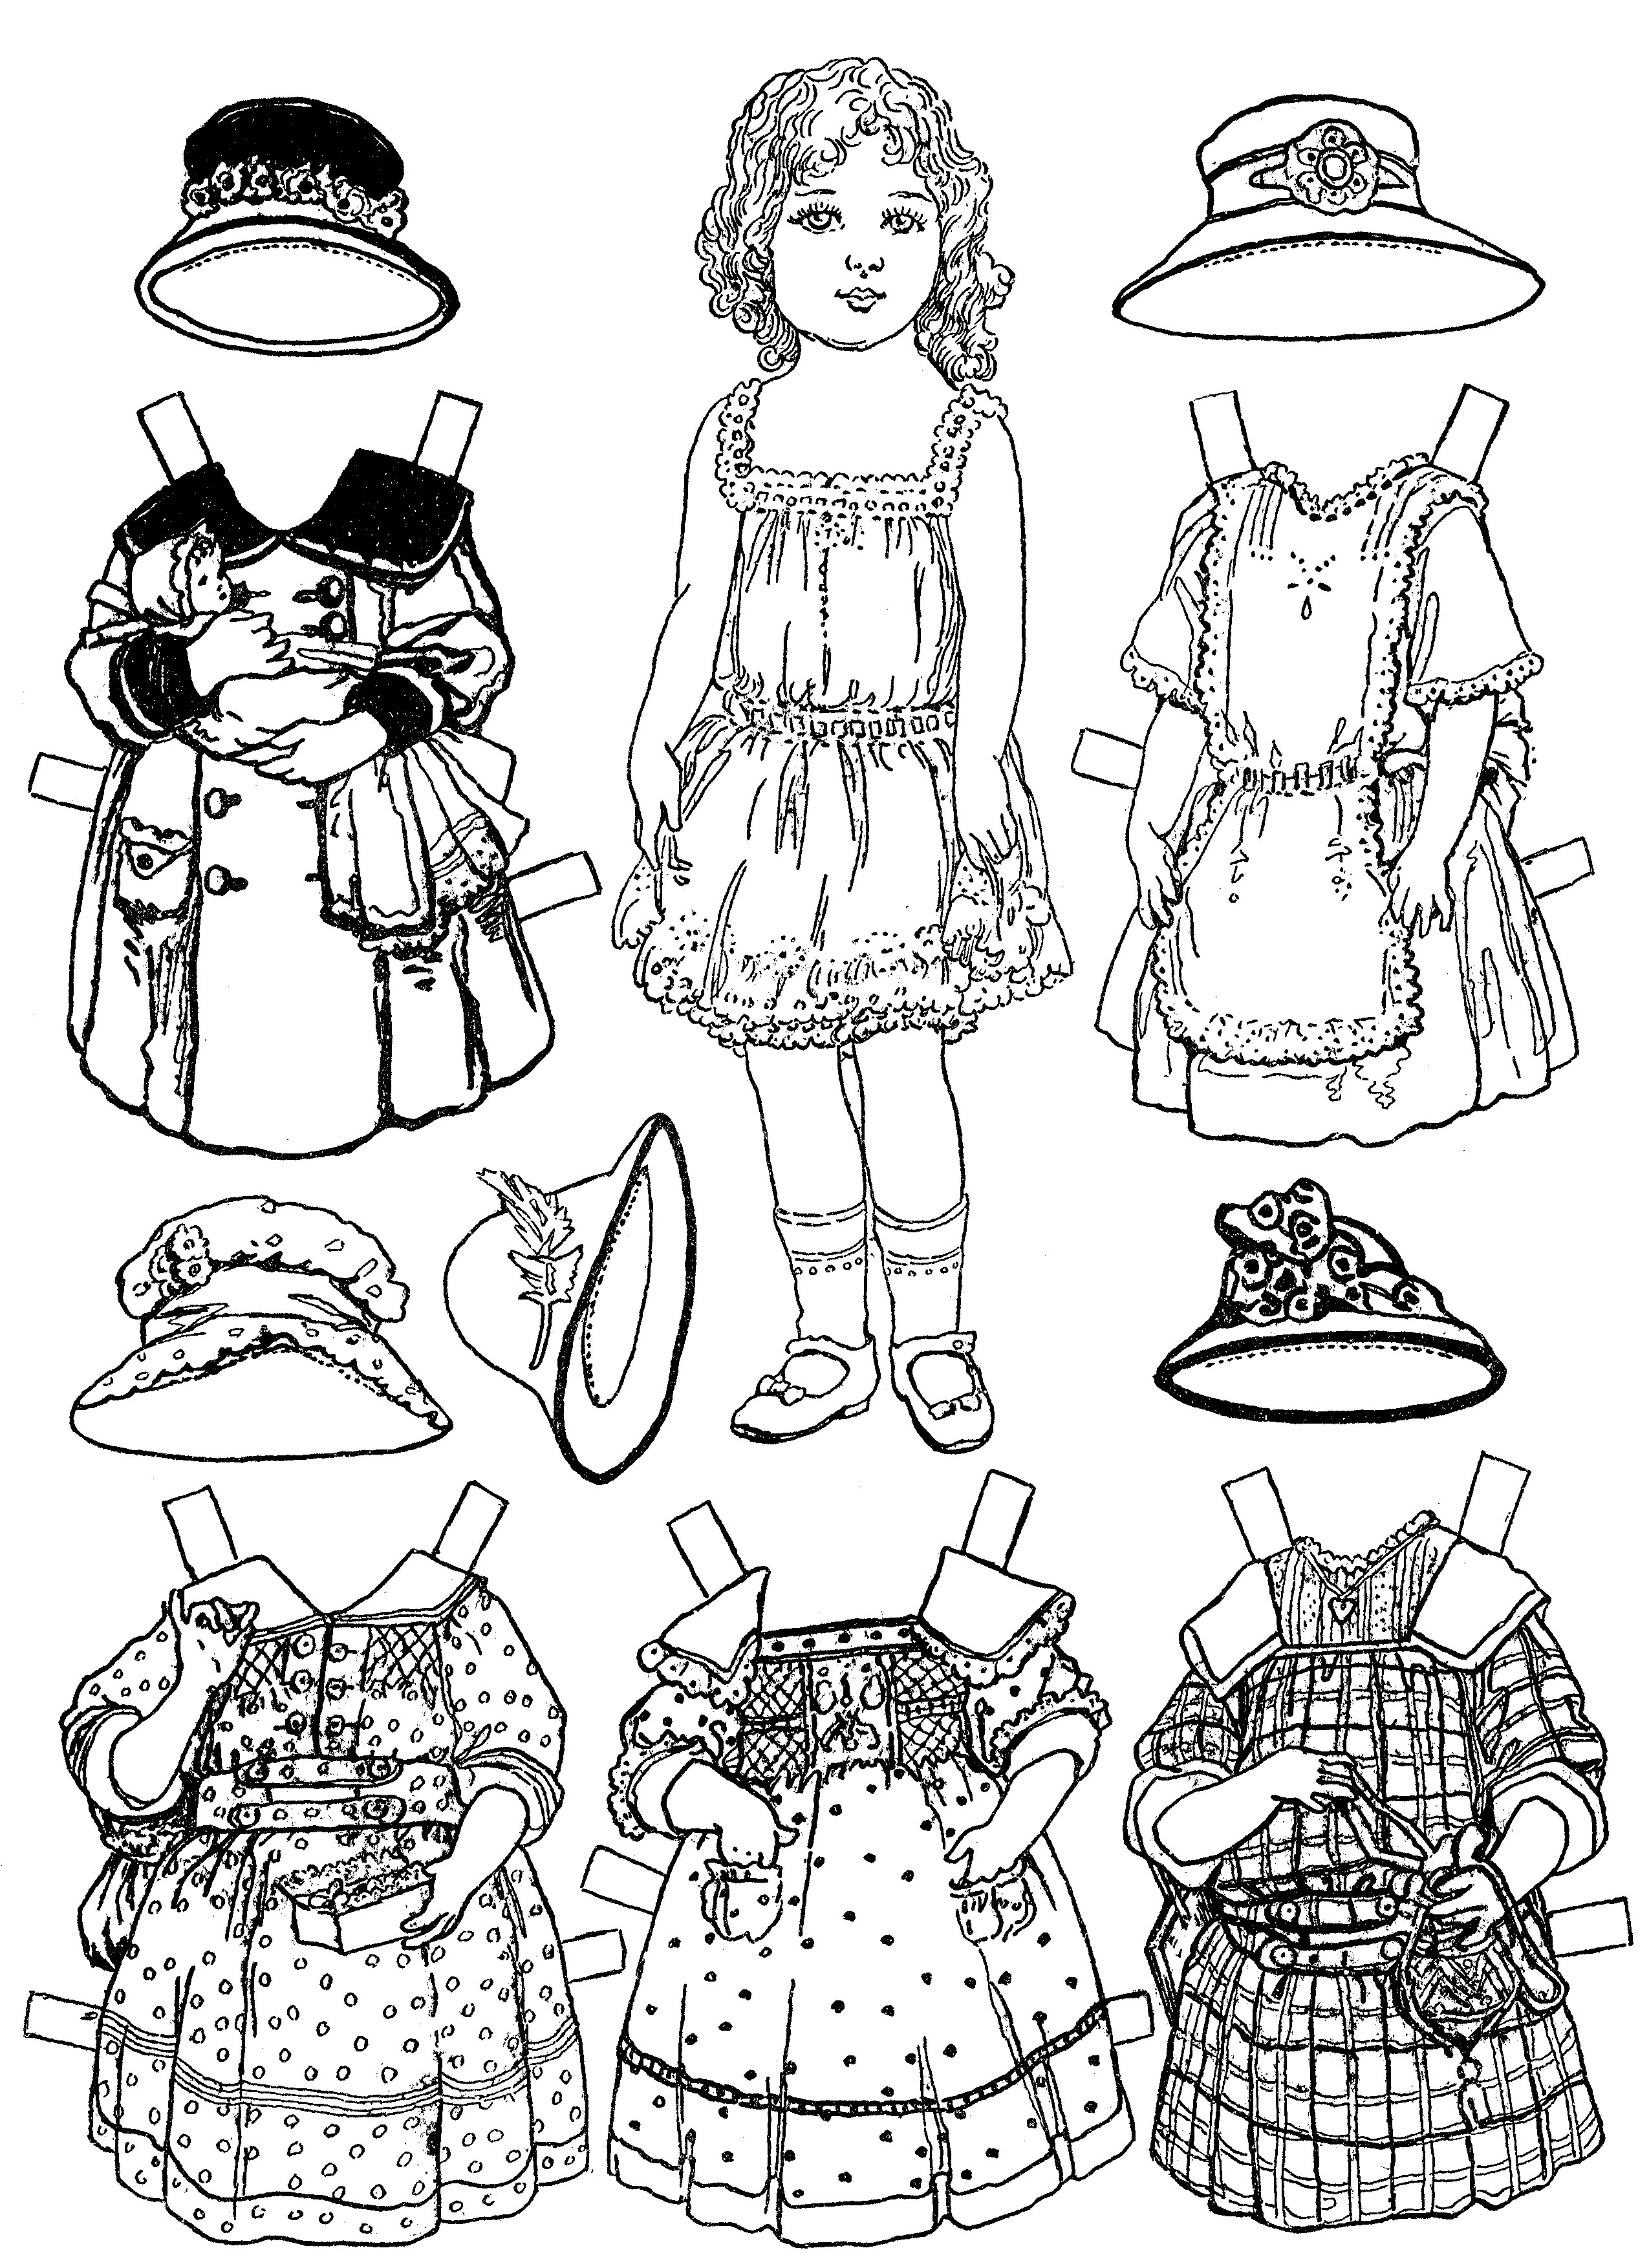 coloring doll print doll coloring pages to download and print for free doll coloring print